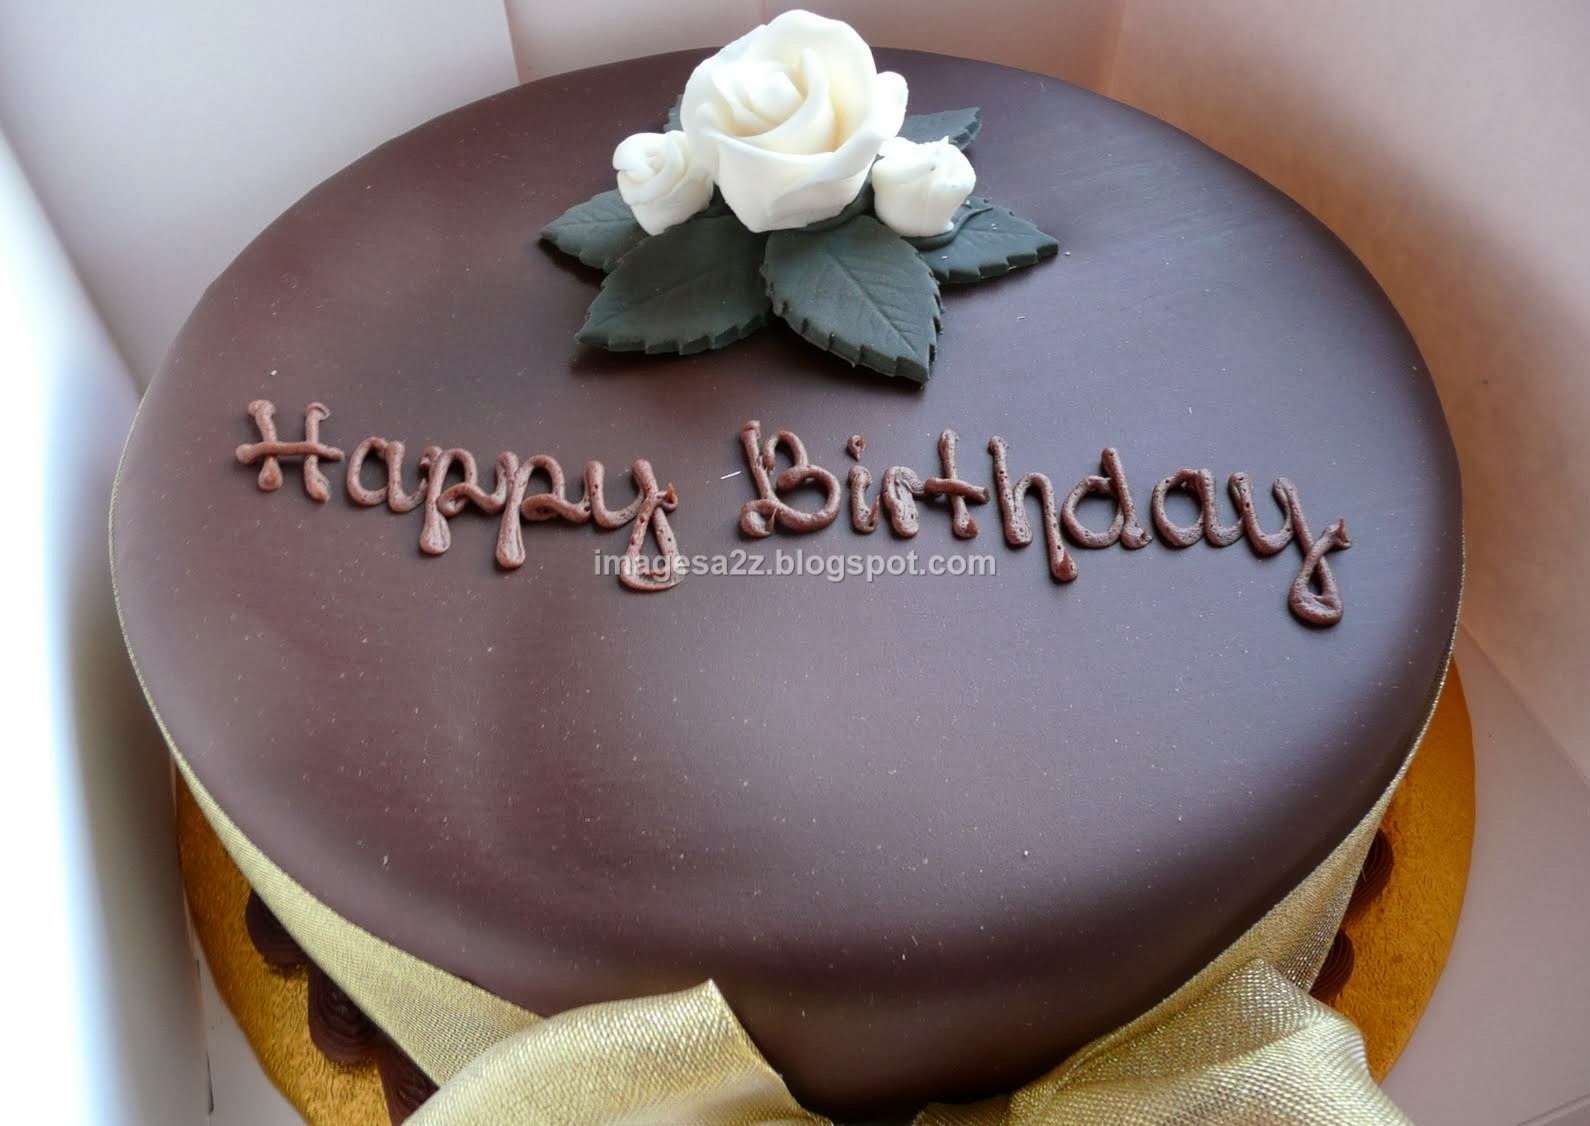 50 Happy Birthday Friend Wishes Quotes Cake Images